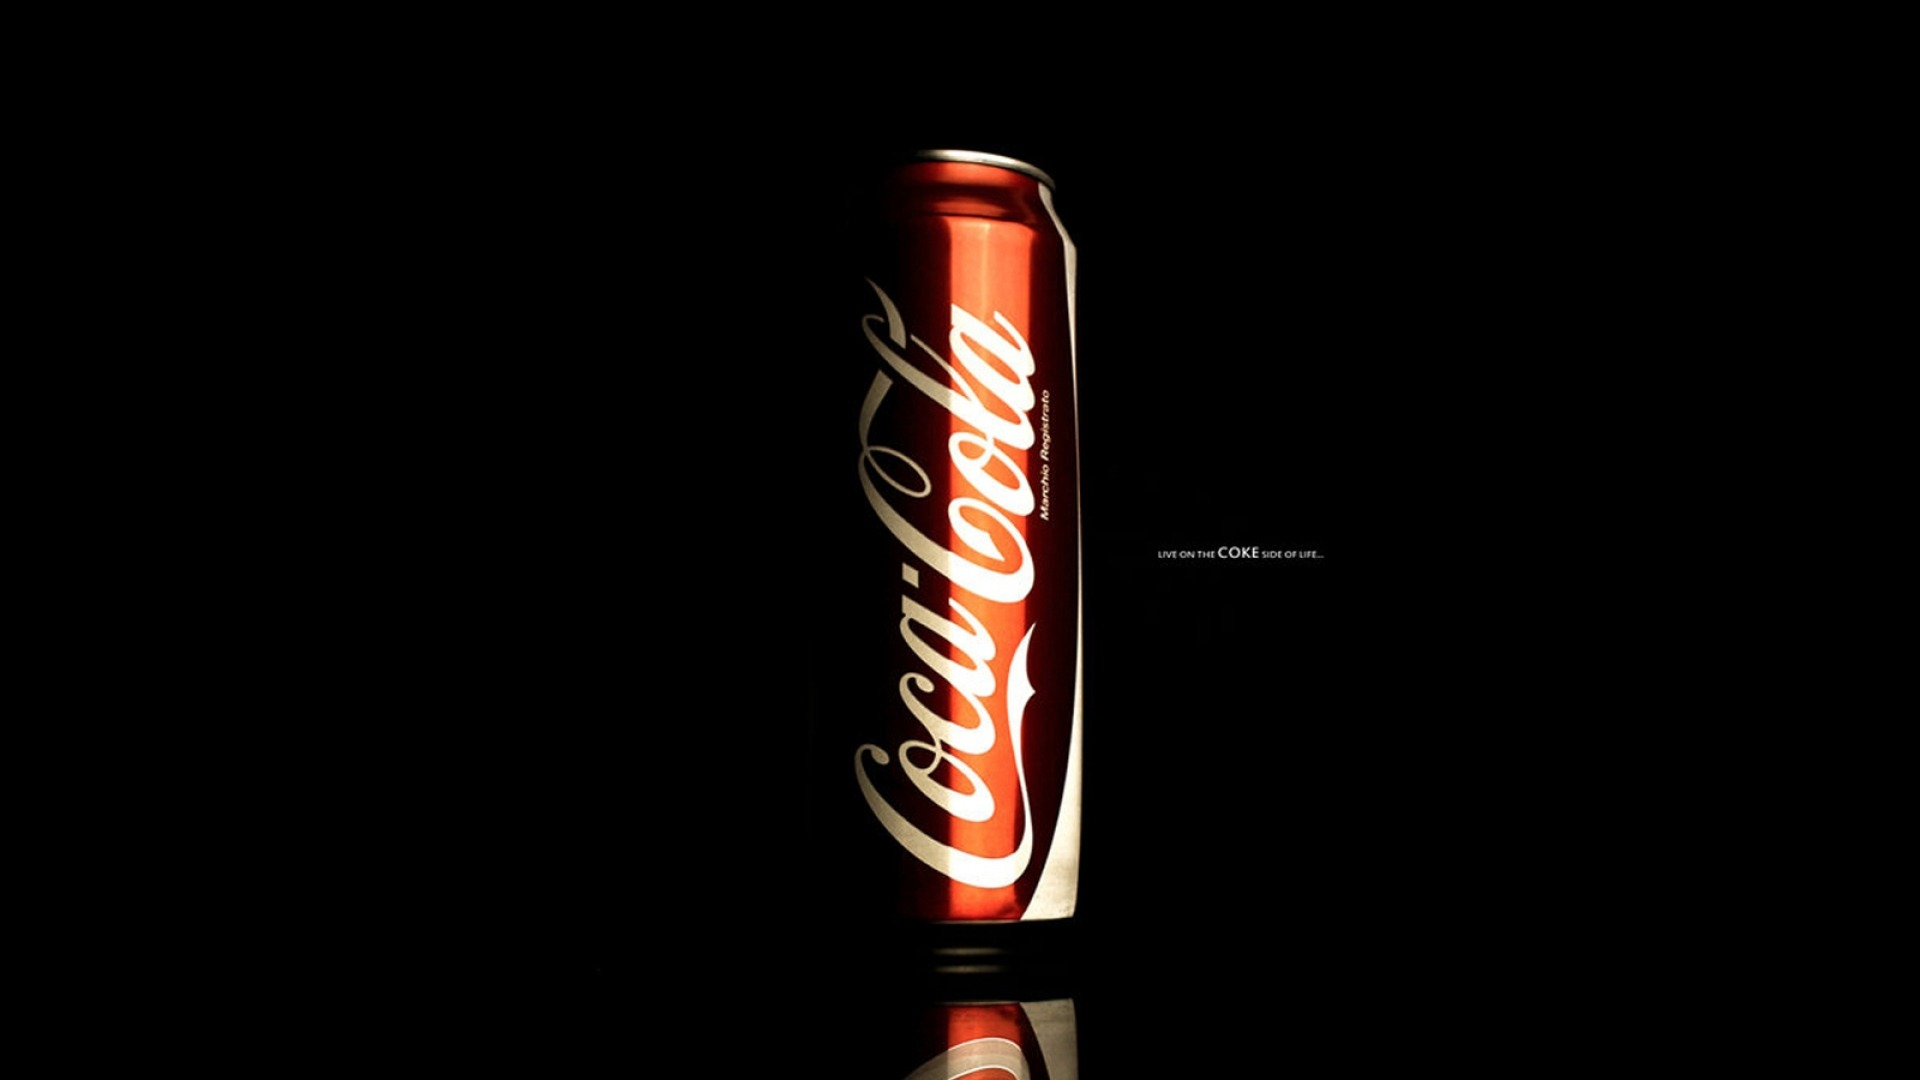 Famoso 70 HD Coca Cola Wallpapers and Backgrounds RS98